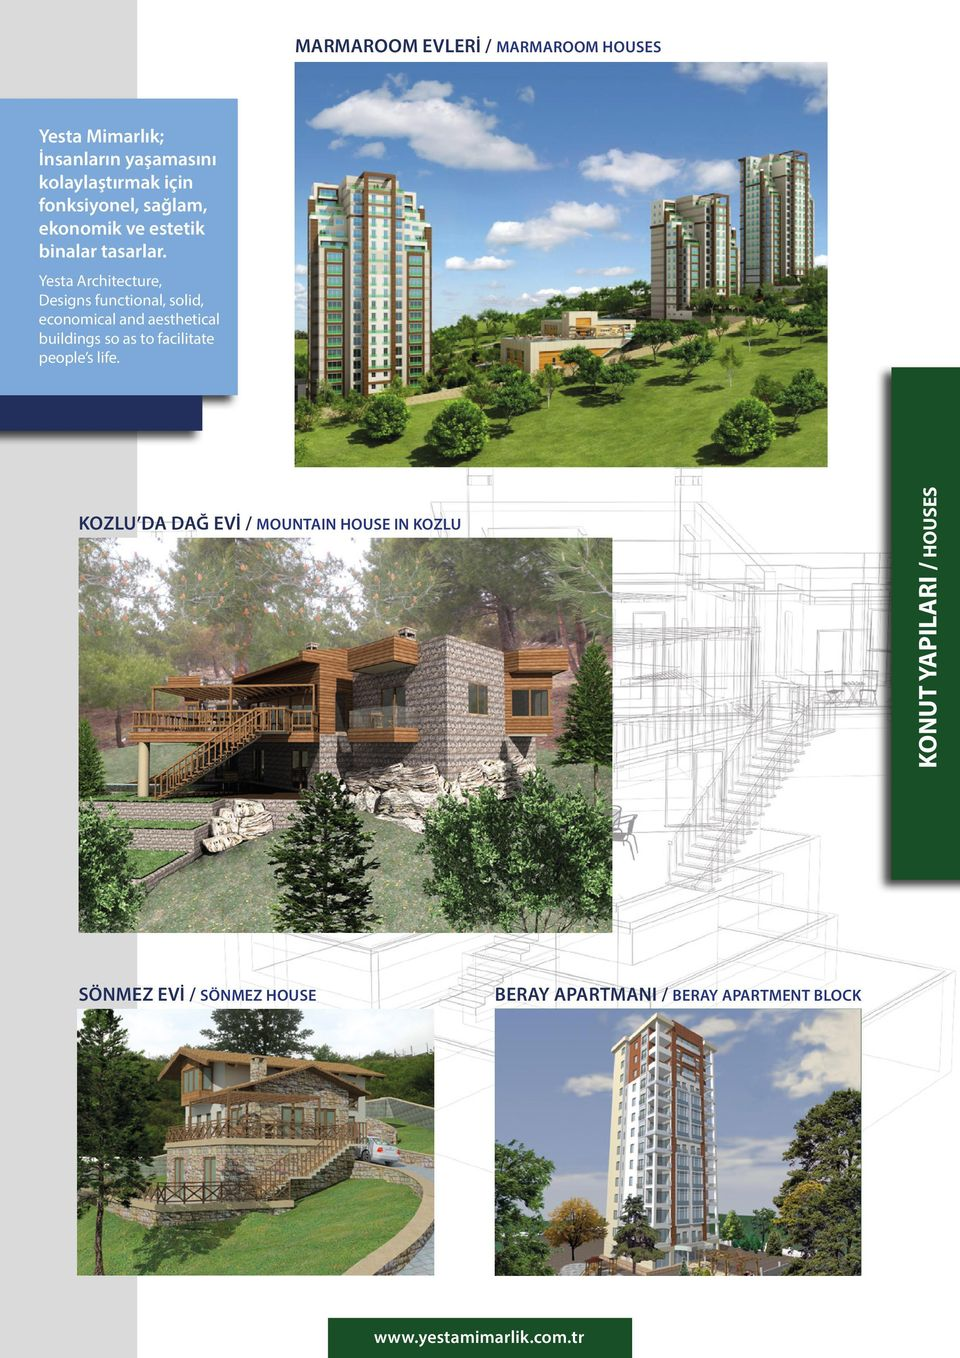 Yesta Architecture, Designs functional, solid, economical and aesthetical buildings so as to